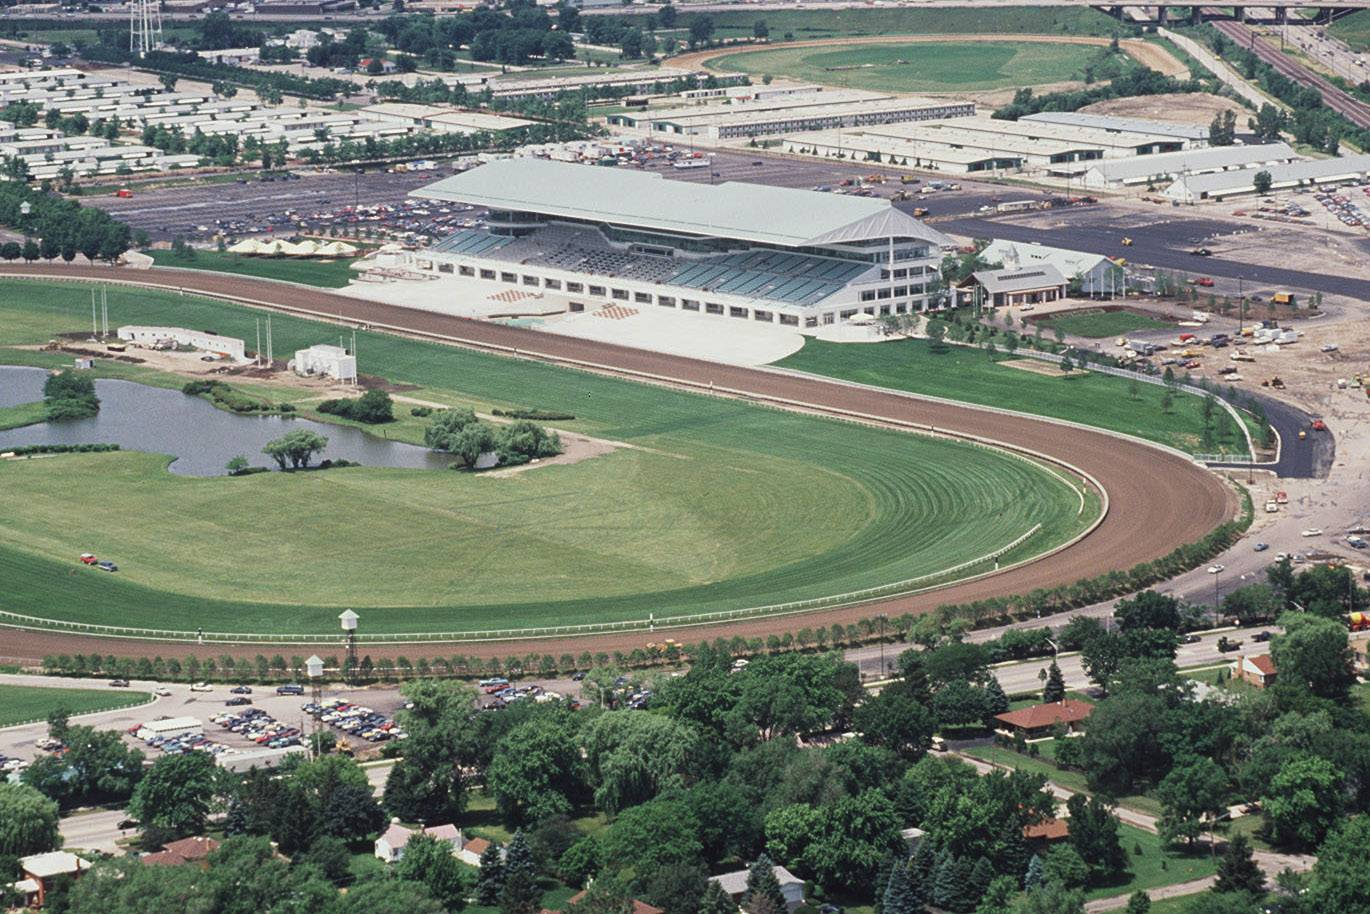 The new Arlington International Racecourse is ready for racing in July 1989 after a fire destoyed the original in 1985.